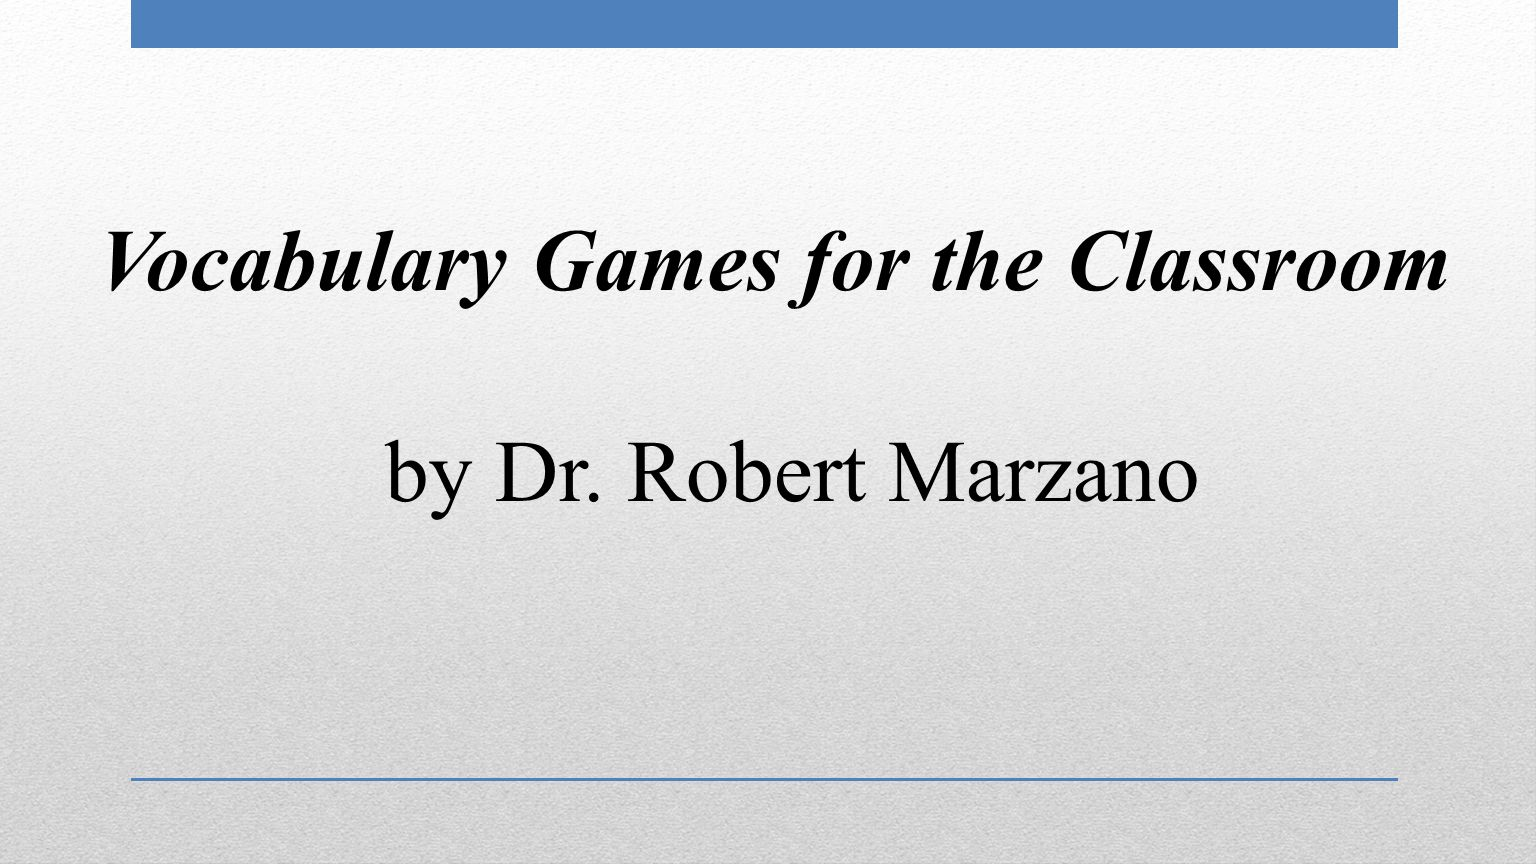 Vocabulary Games for the Classroom by Dr. Robert Marzano